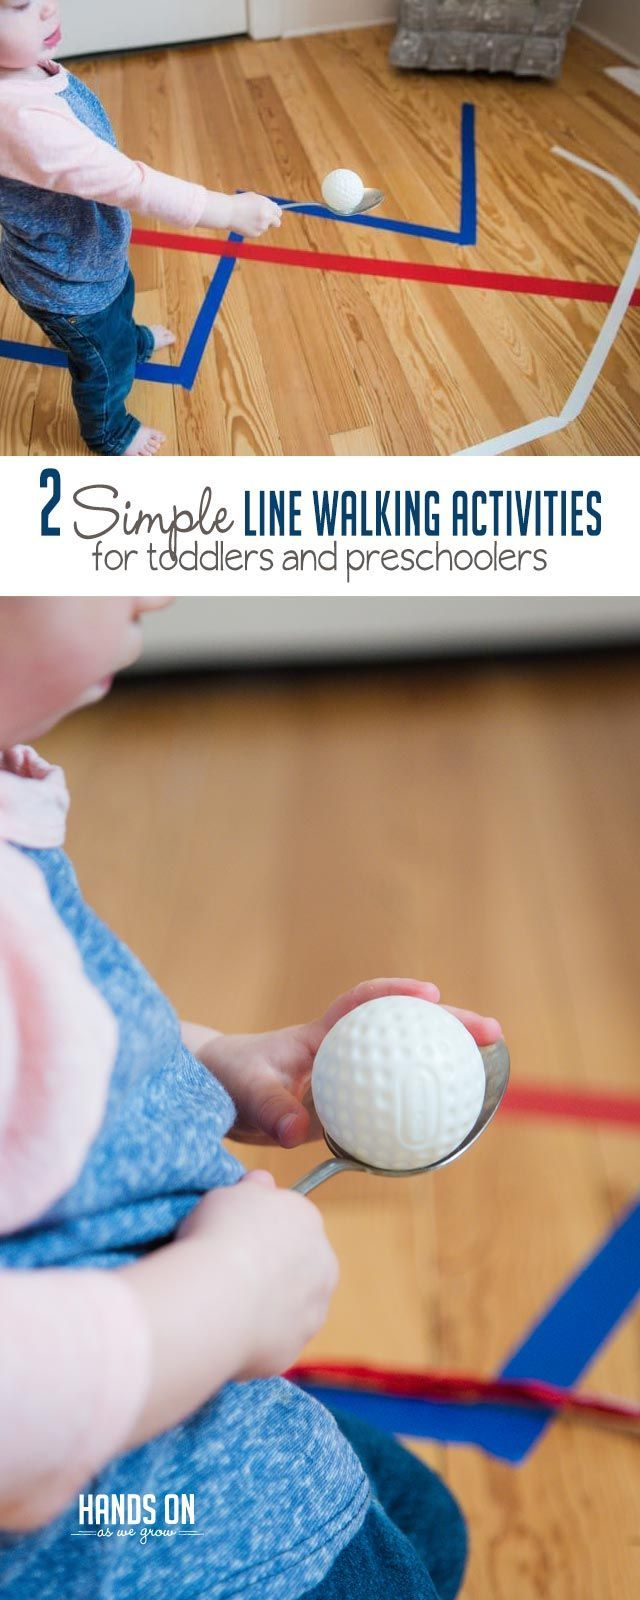 Two simple line walking activities for preschoolers and toddlers that will help practice balance and coordination! Easy set-up and directions! via Jam…